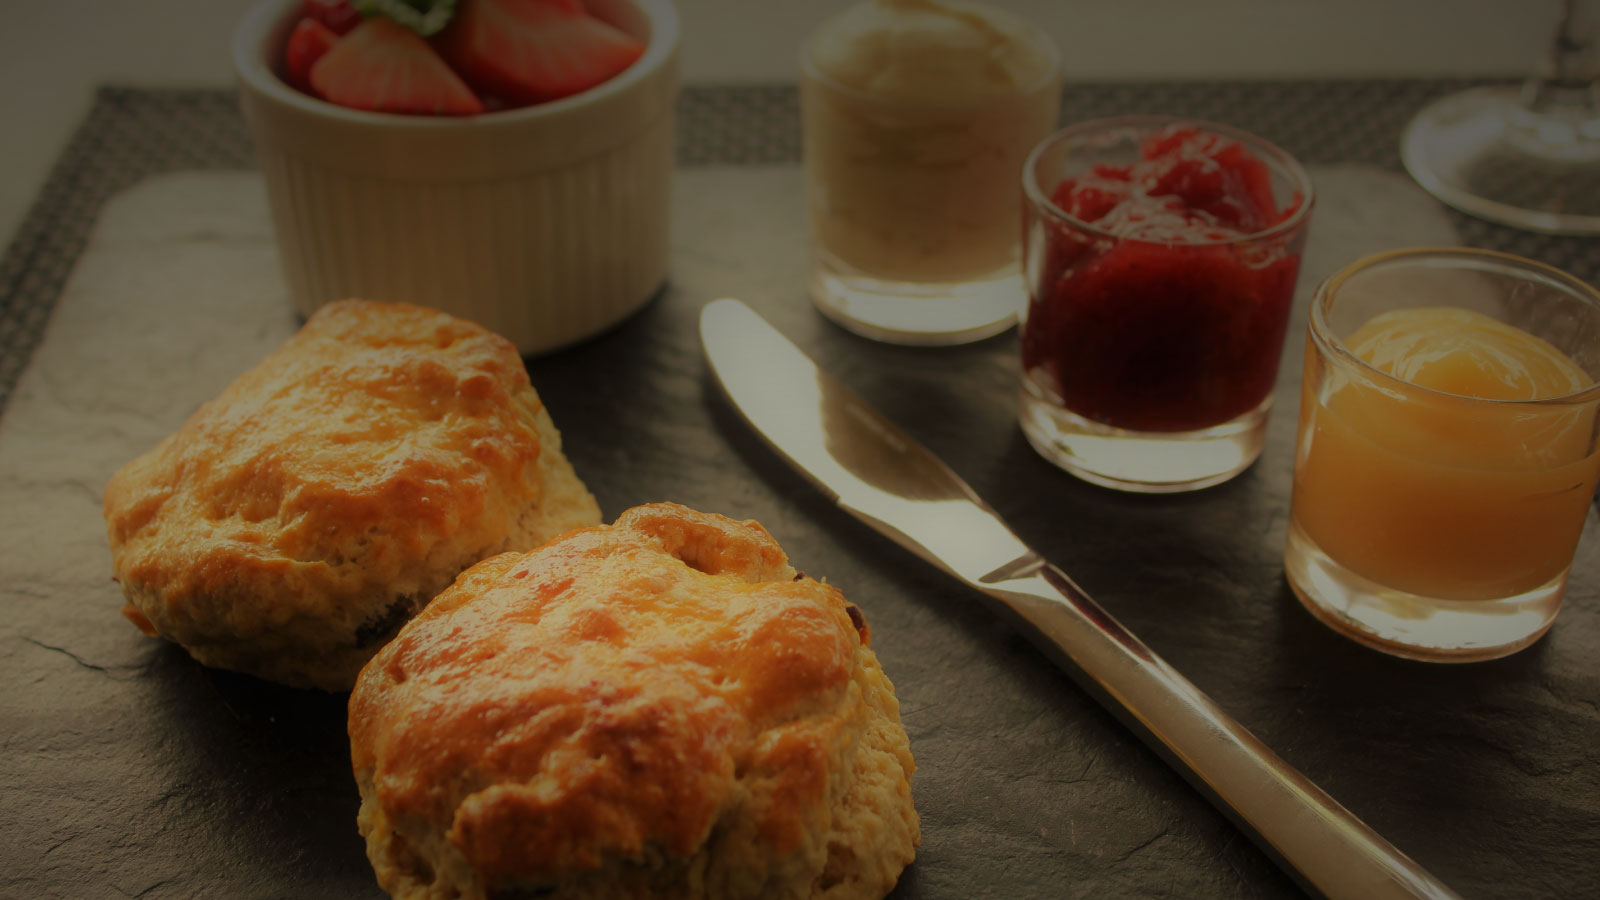 Scone with selection of fillings